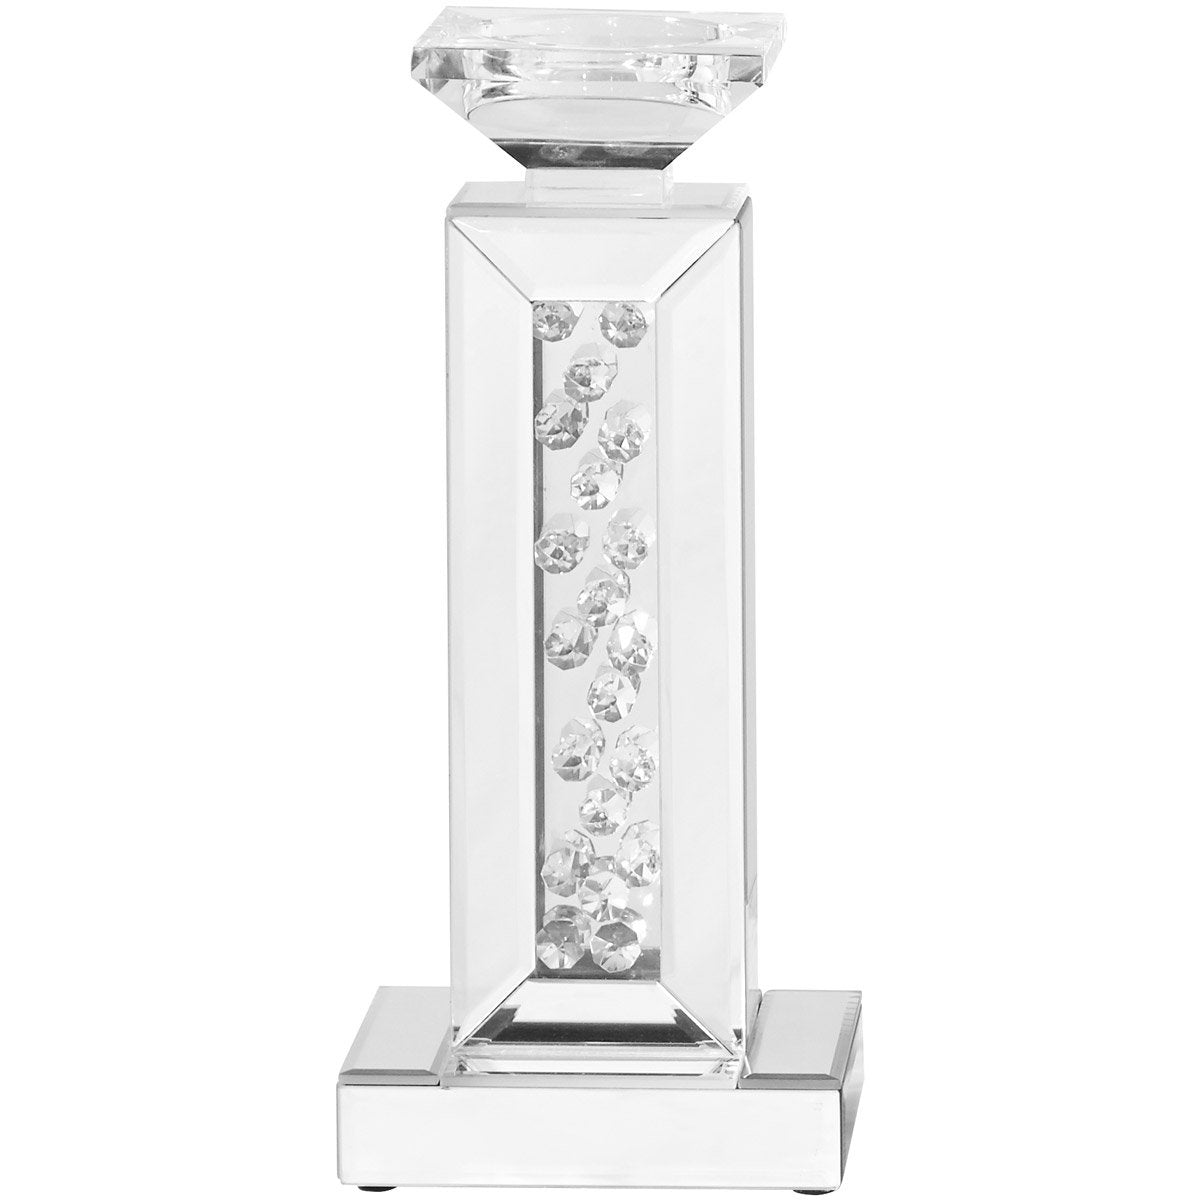 Sparkle 14 X 6 Candleholder (Mr9111) Candle Holder